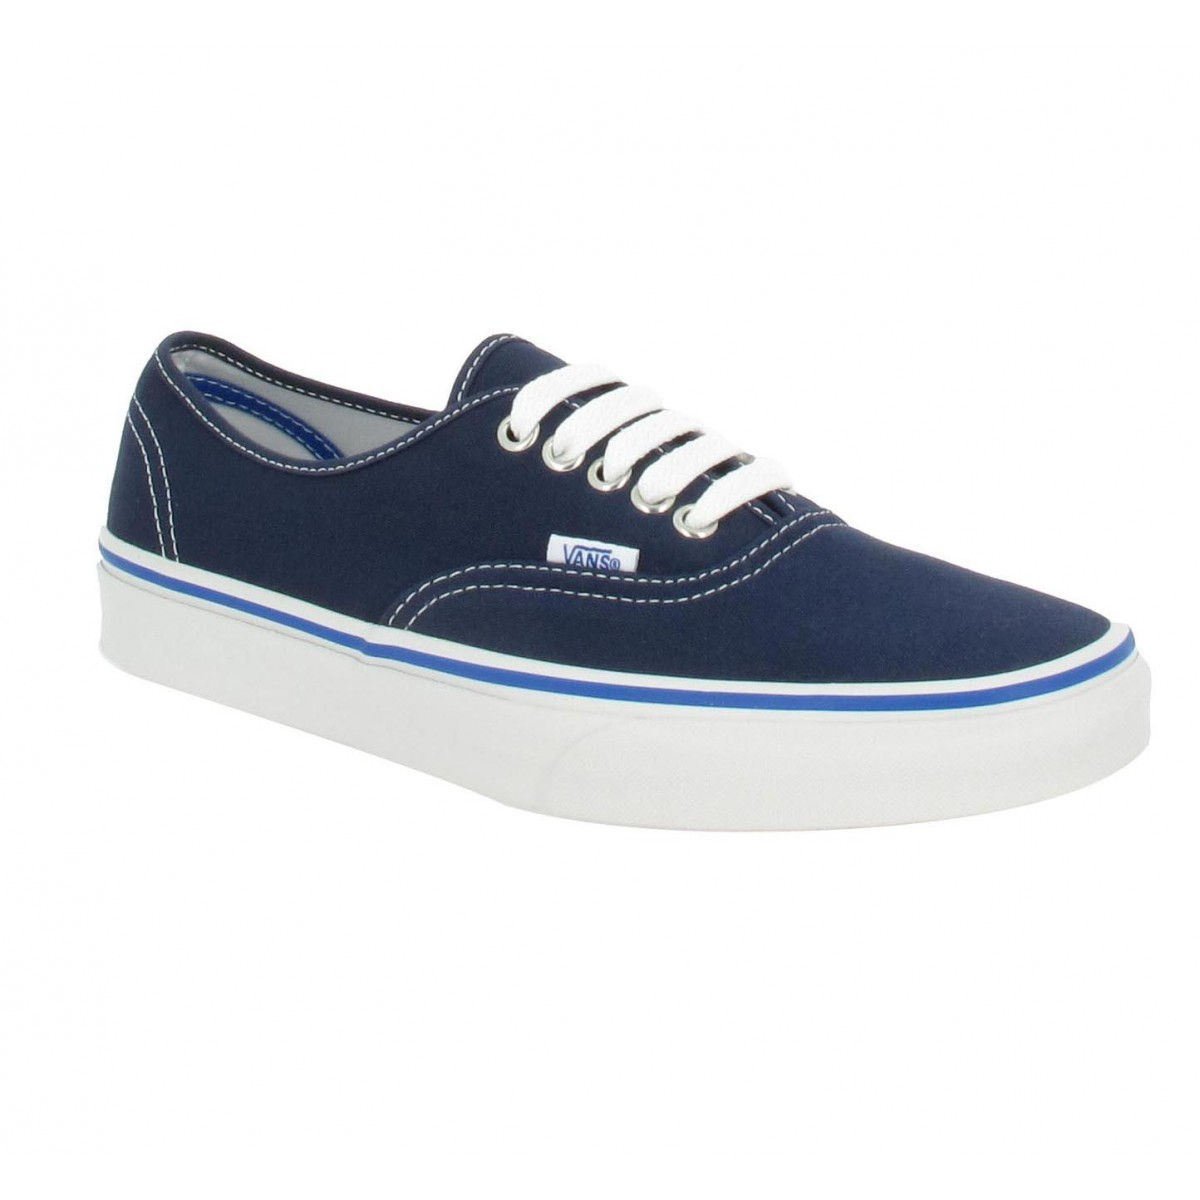 Vans Vans Vans Authentic Toile...